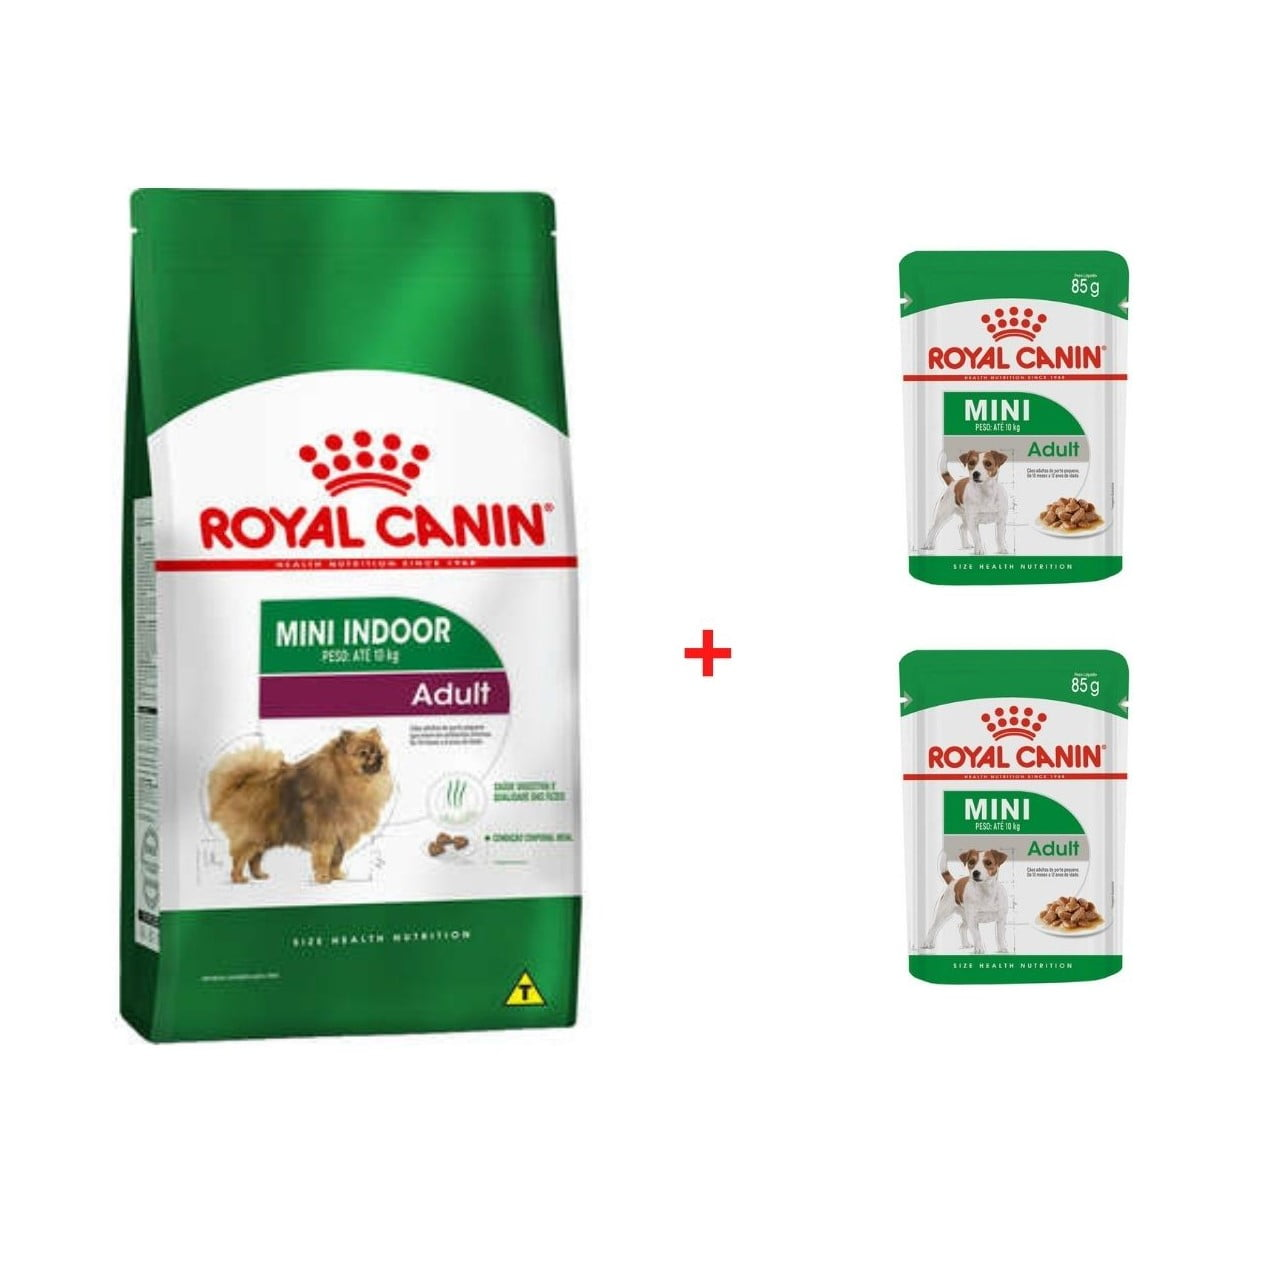 Combo Ração Royal Canin Mini Indoor Adulto 7,5kg + 2 Sachês Royal Canin Mini Adulto 100g